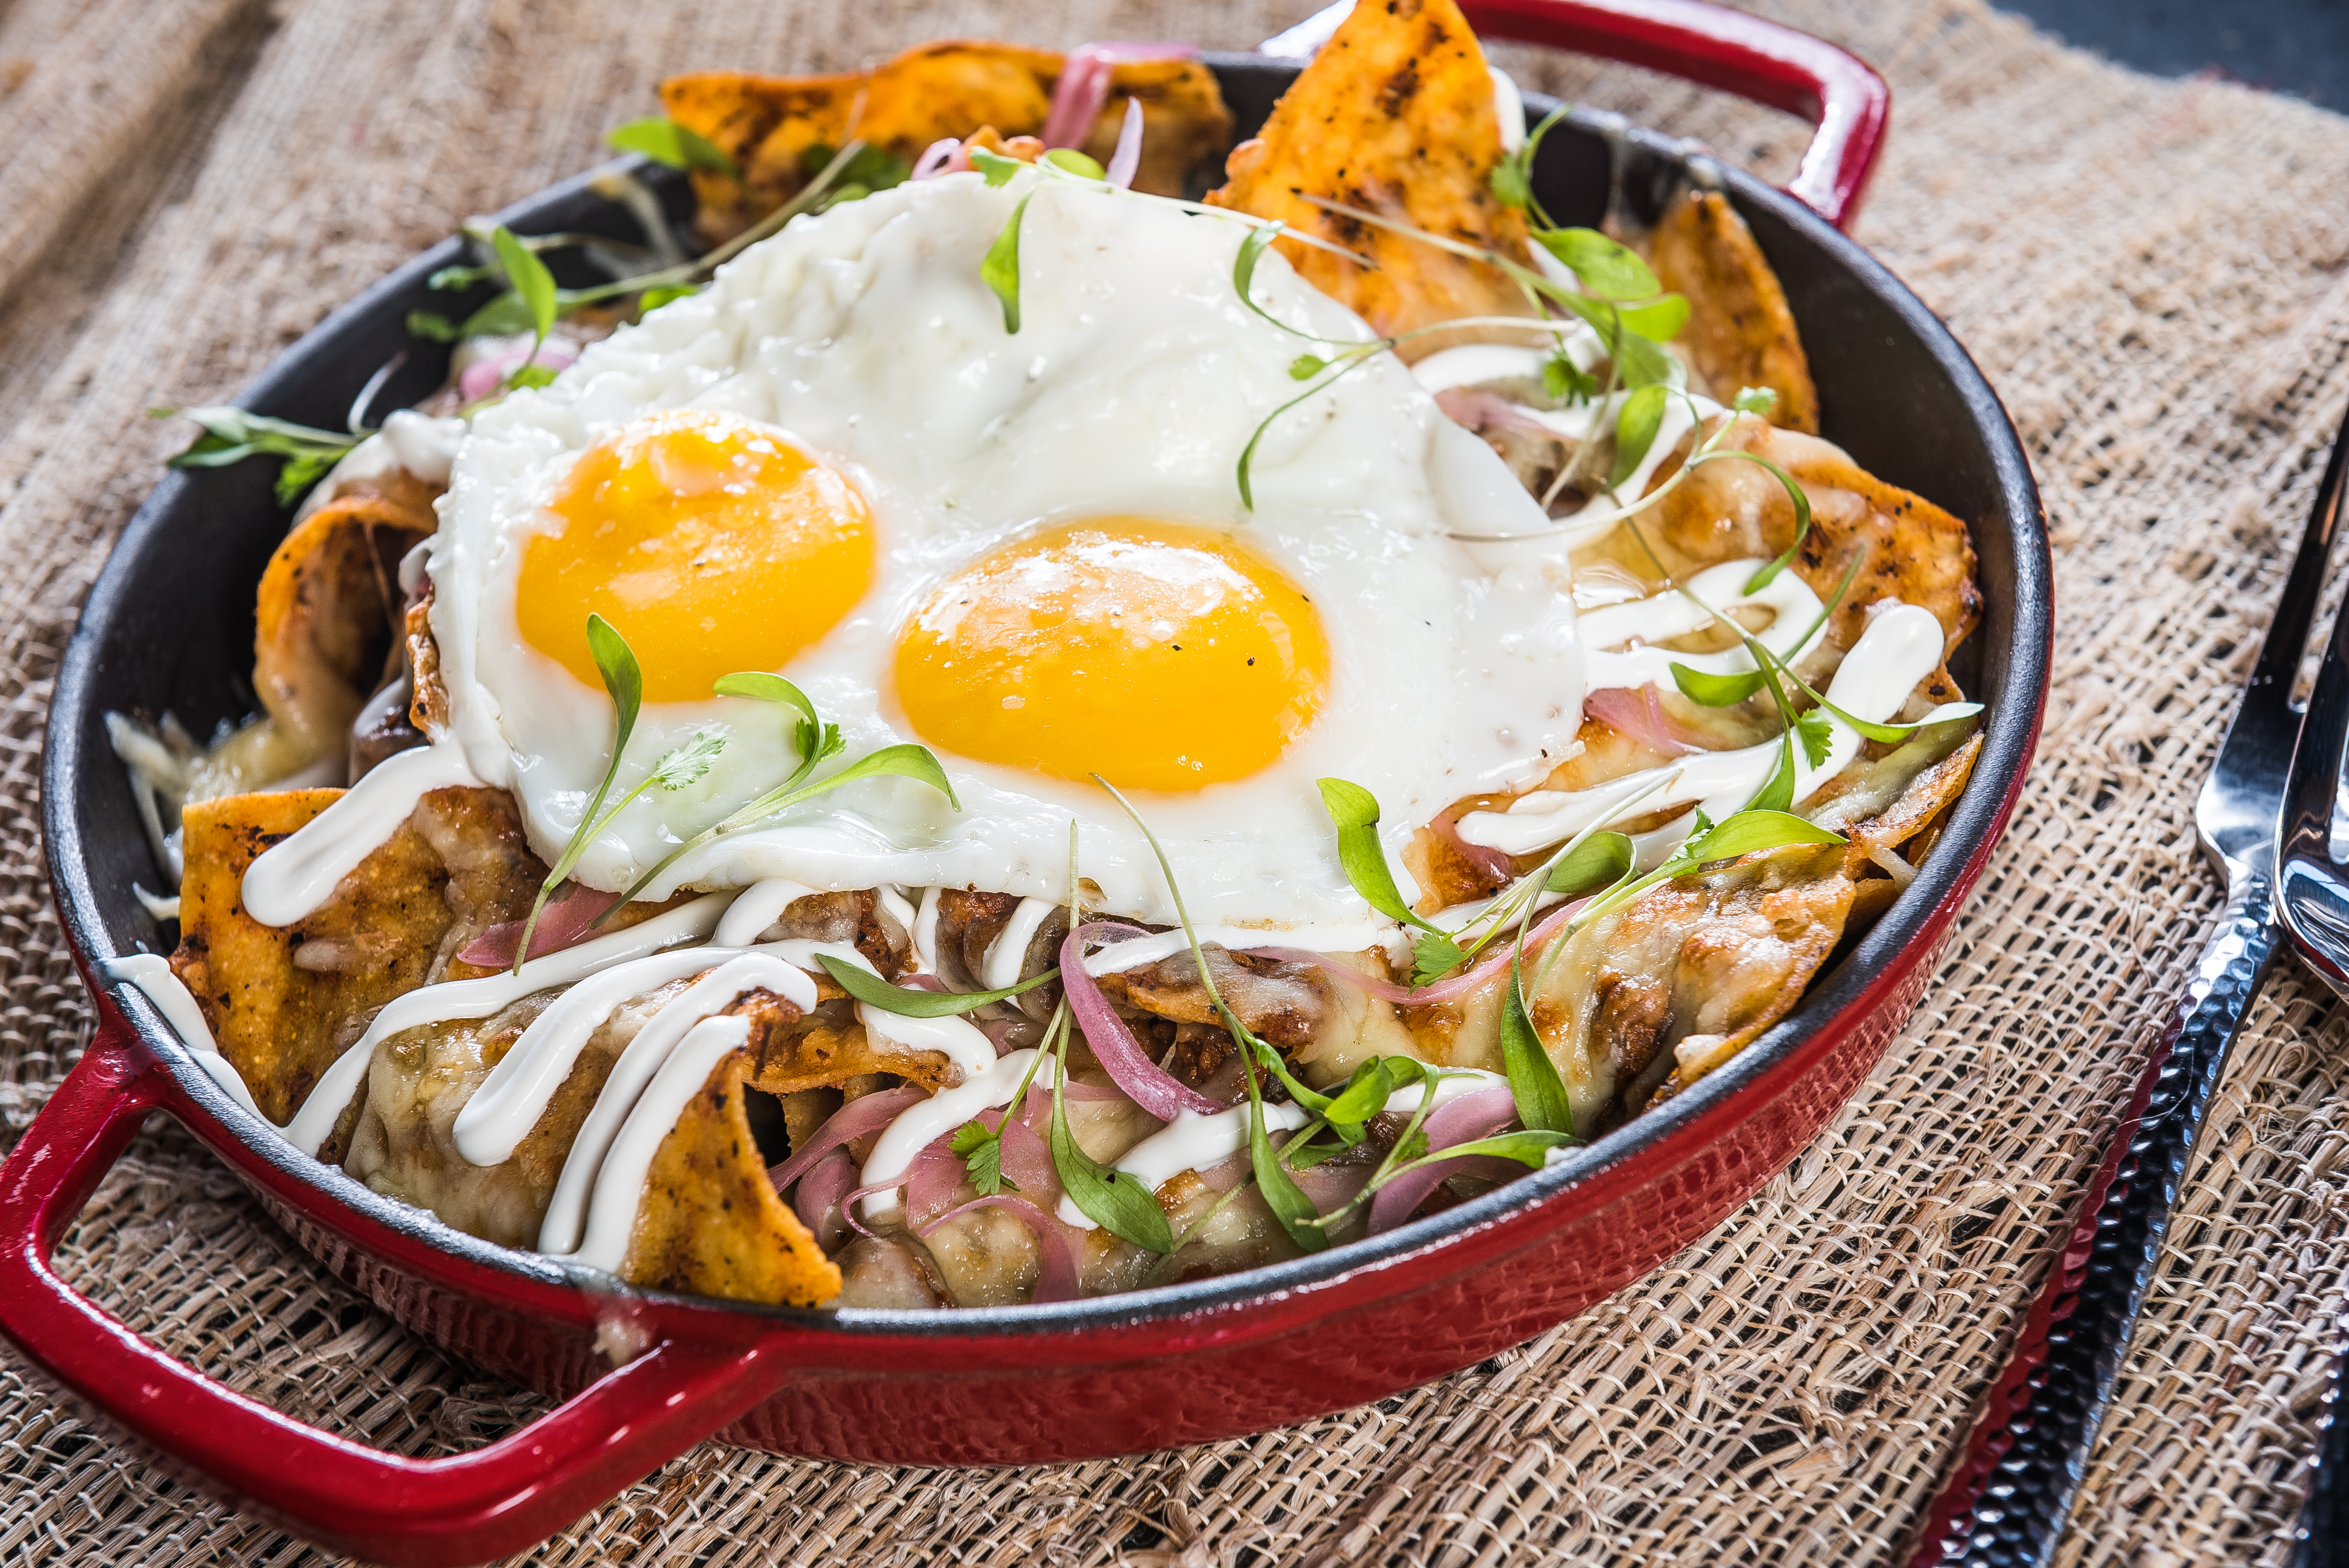 Chilaquiles: Chips, scrambled eggs, chorizo, crema, pickled onions, ranchera and Chihuahua cheese (Image: Rey Lopez)